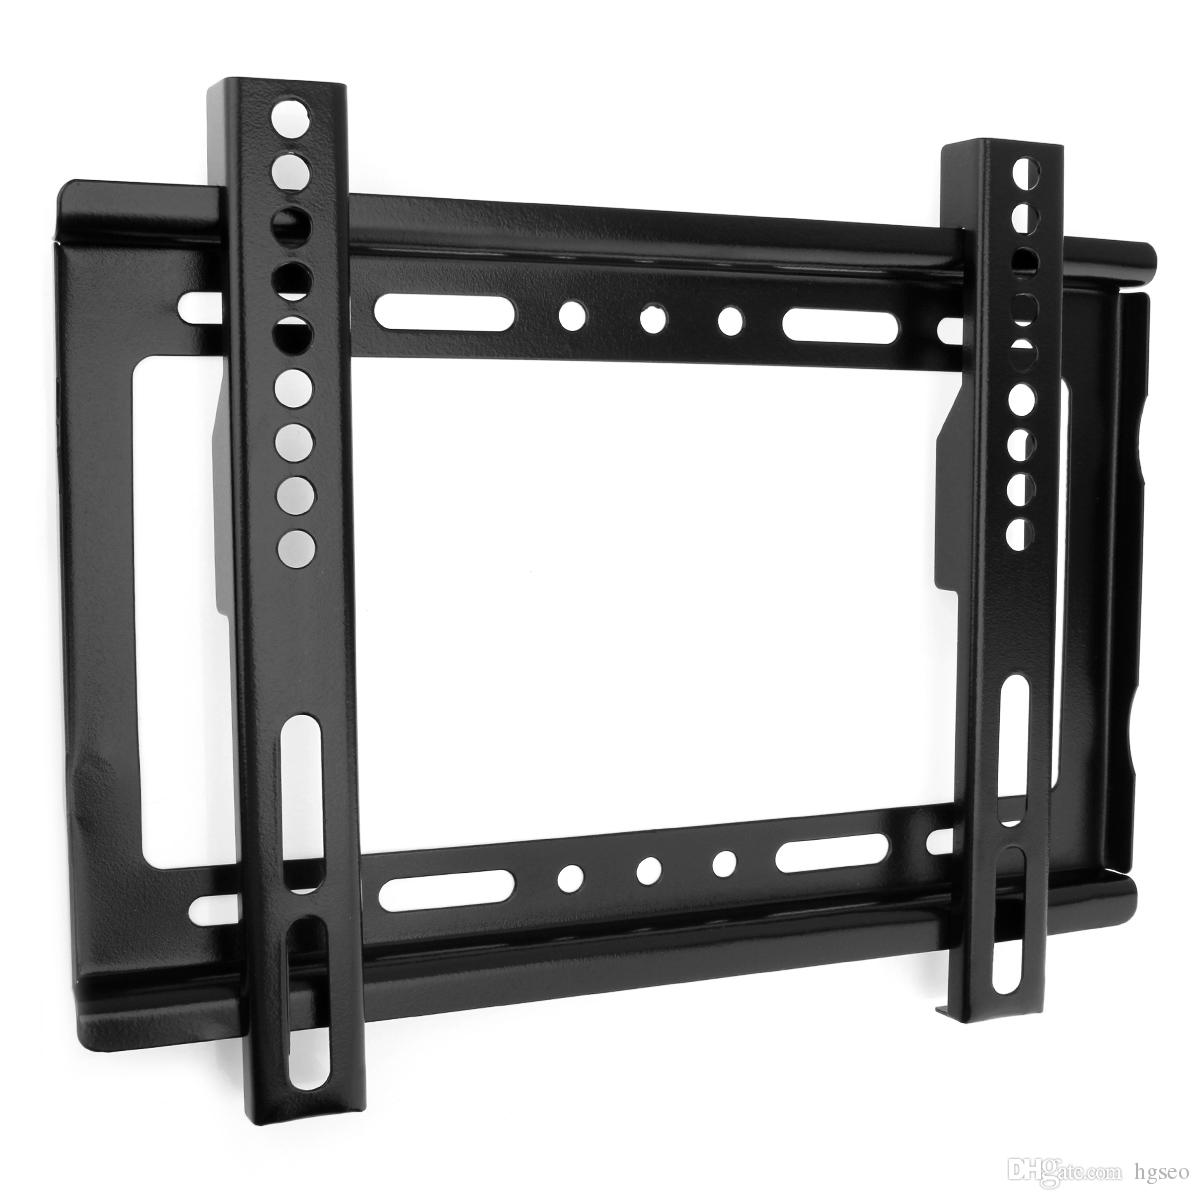 2018 high quality universal tv wall mount bracket for most. Black Bedroom Furniture Sets. Home Design Ideas